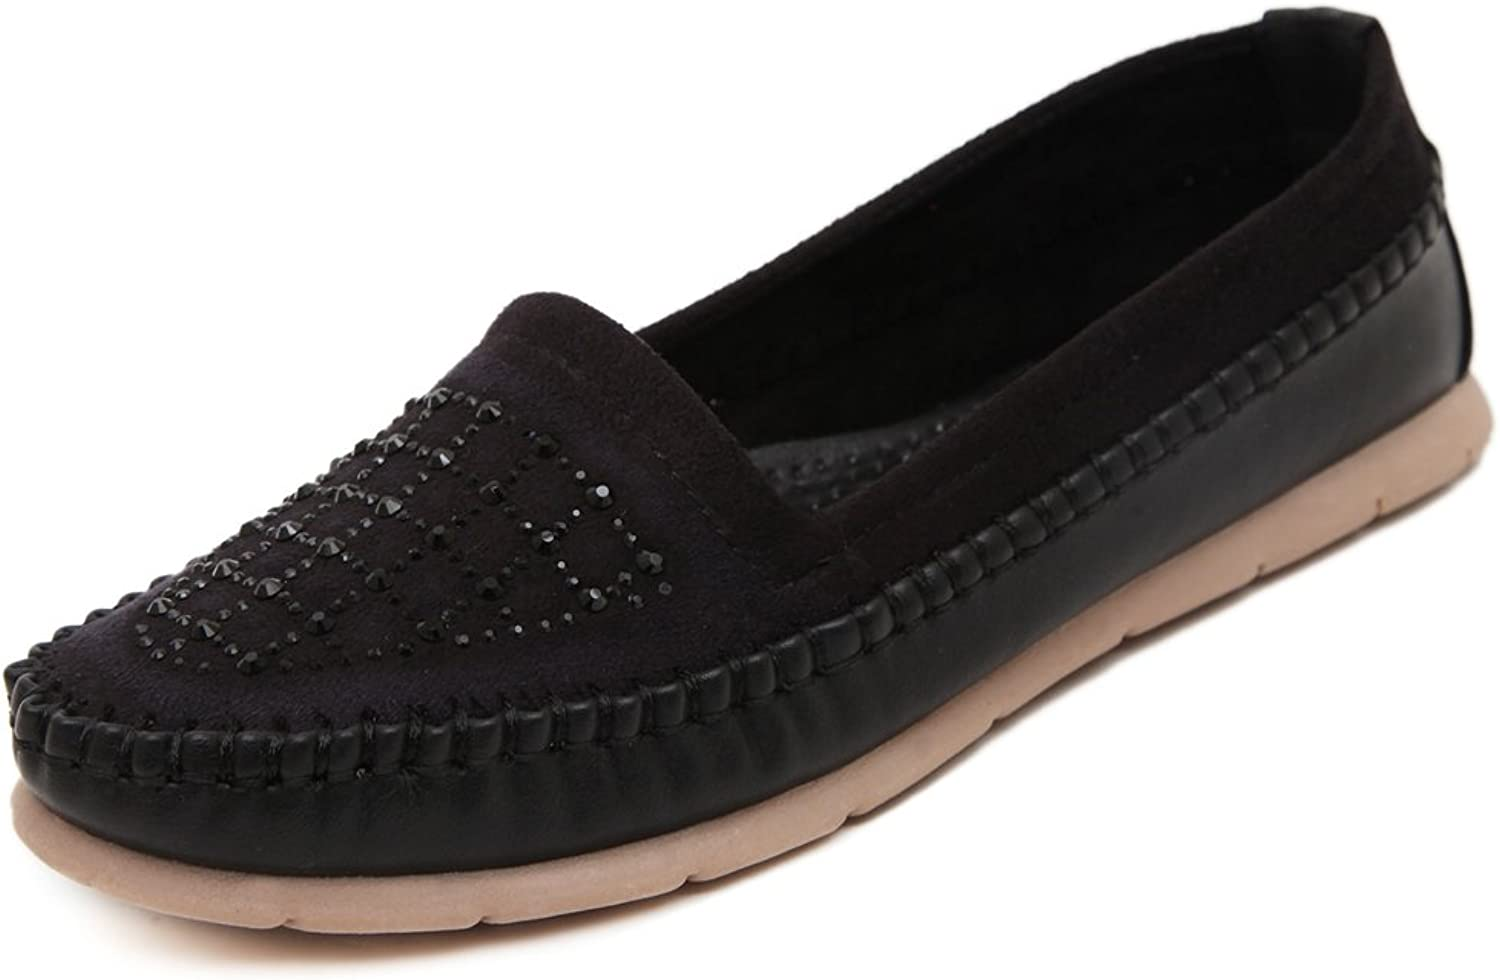 Adelina Women's Beaded Solid Boat Loafer shoes Driving Moccasin Black 40 EU   8.5-9 US